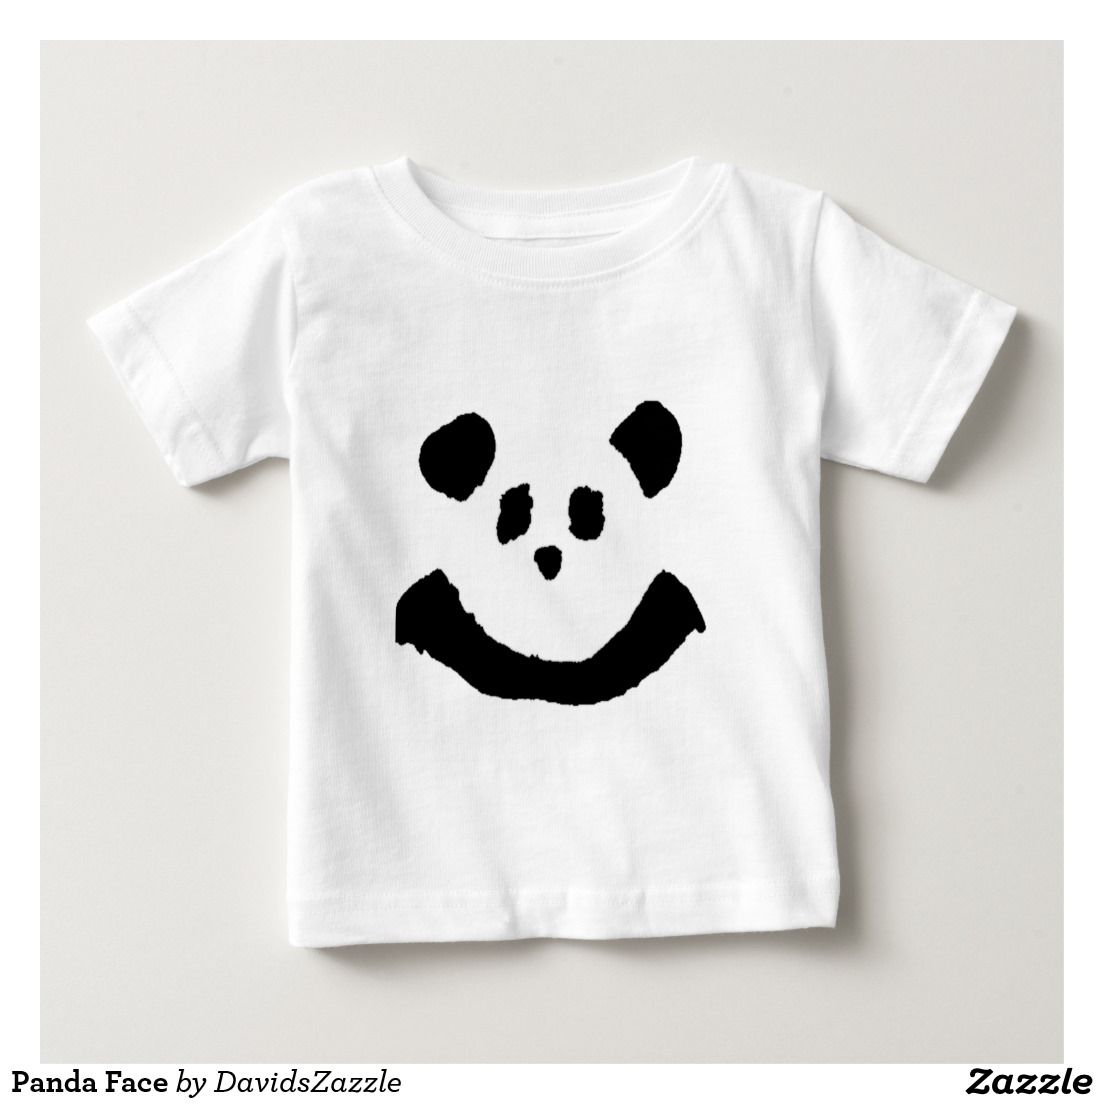 Panda Face Baby Tee  Available on more products! Type in the name of the design in the search bar on my Zazzle Products Page. Thanks for looking!   #baby #clothes #apparel #suit #shirt #tee #beanie #hoody #long #sleeve #sweatshirt #pacifier #fun #zazzle #buy #sale #cute #cuddly #panda #bear #cartoon #illustration #black #white #drawing #nature #planet #earth #animal #friend